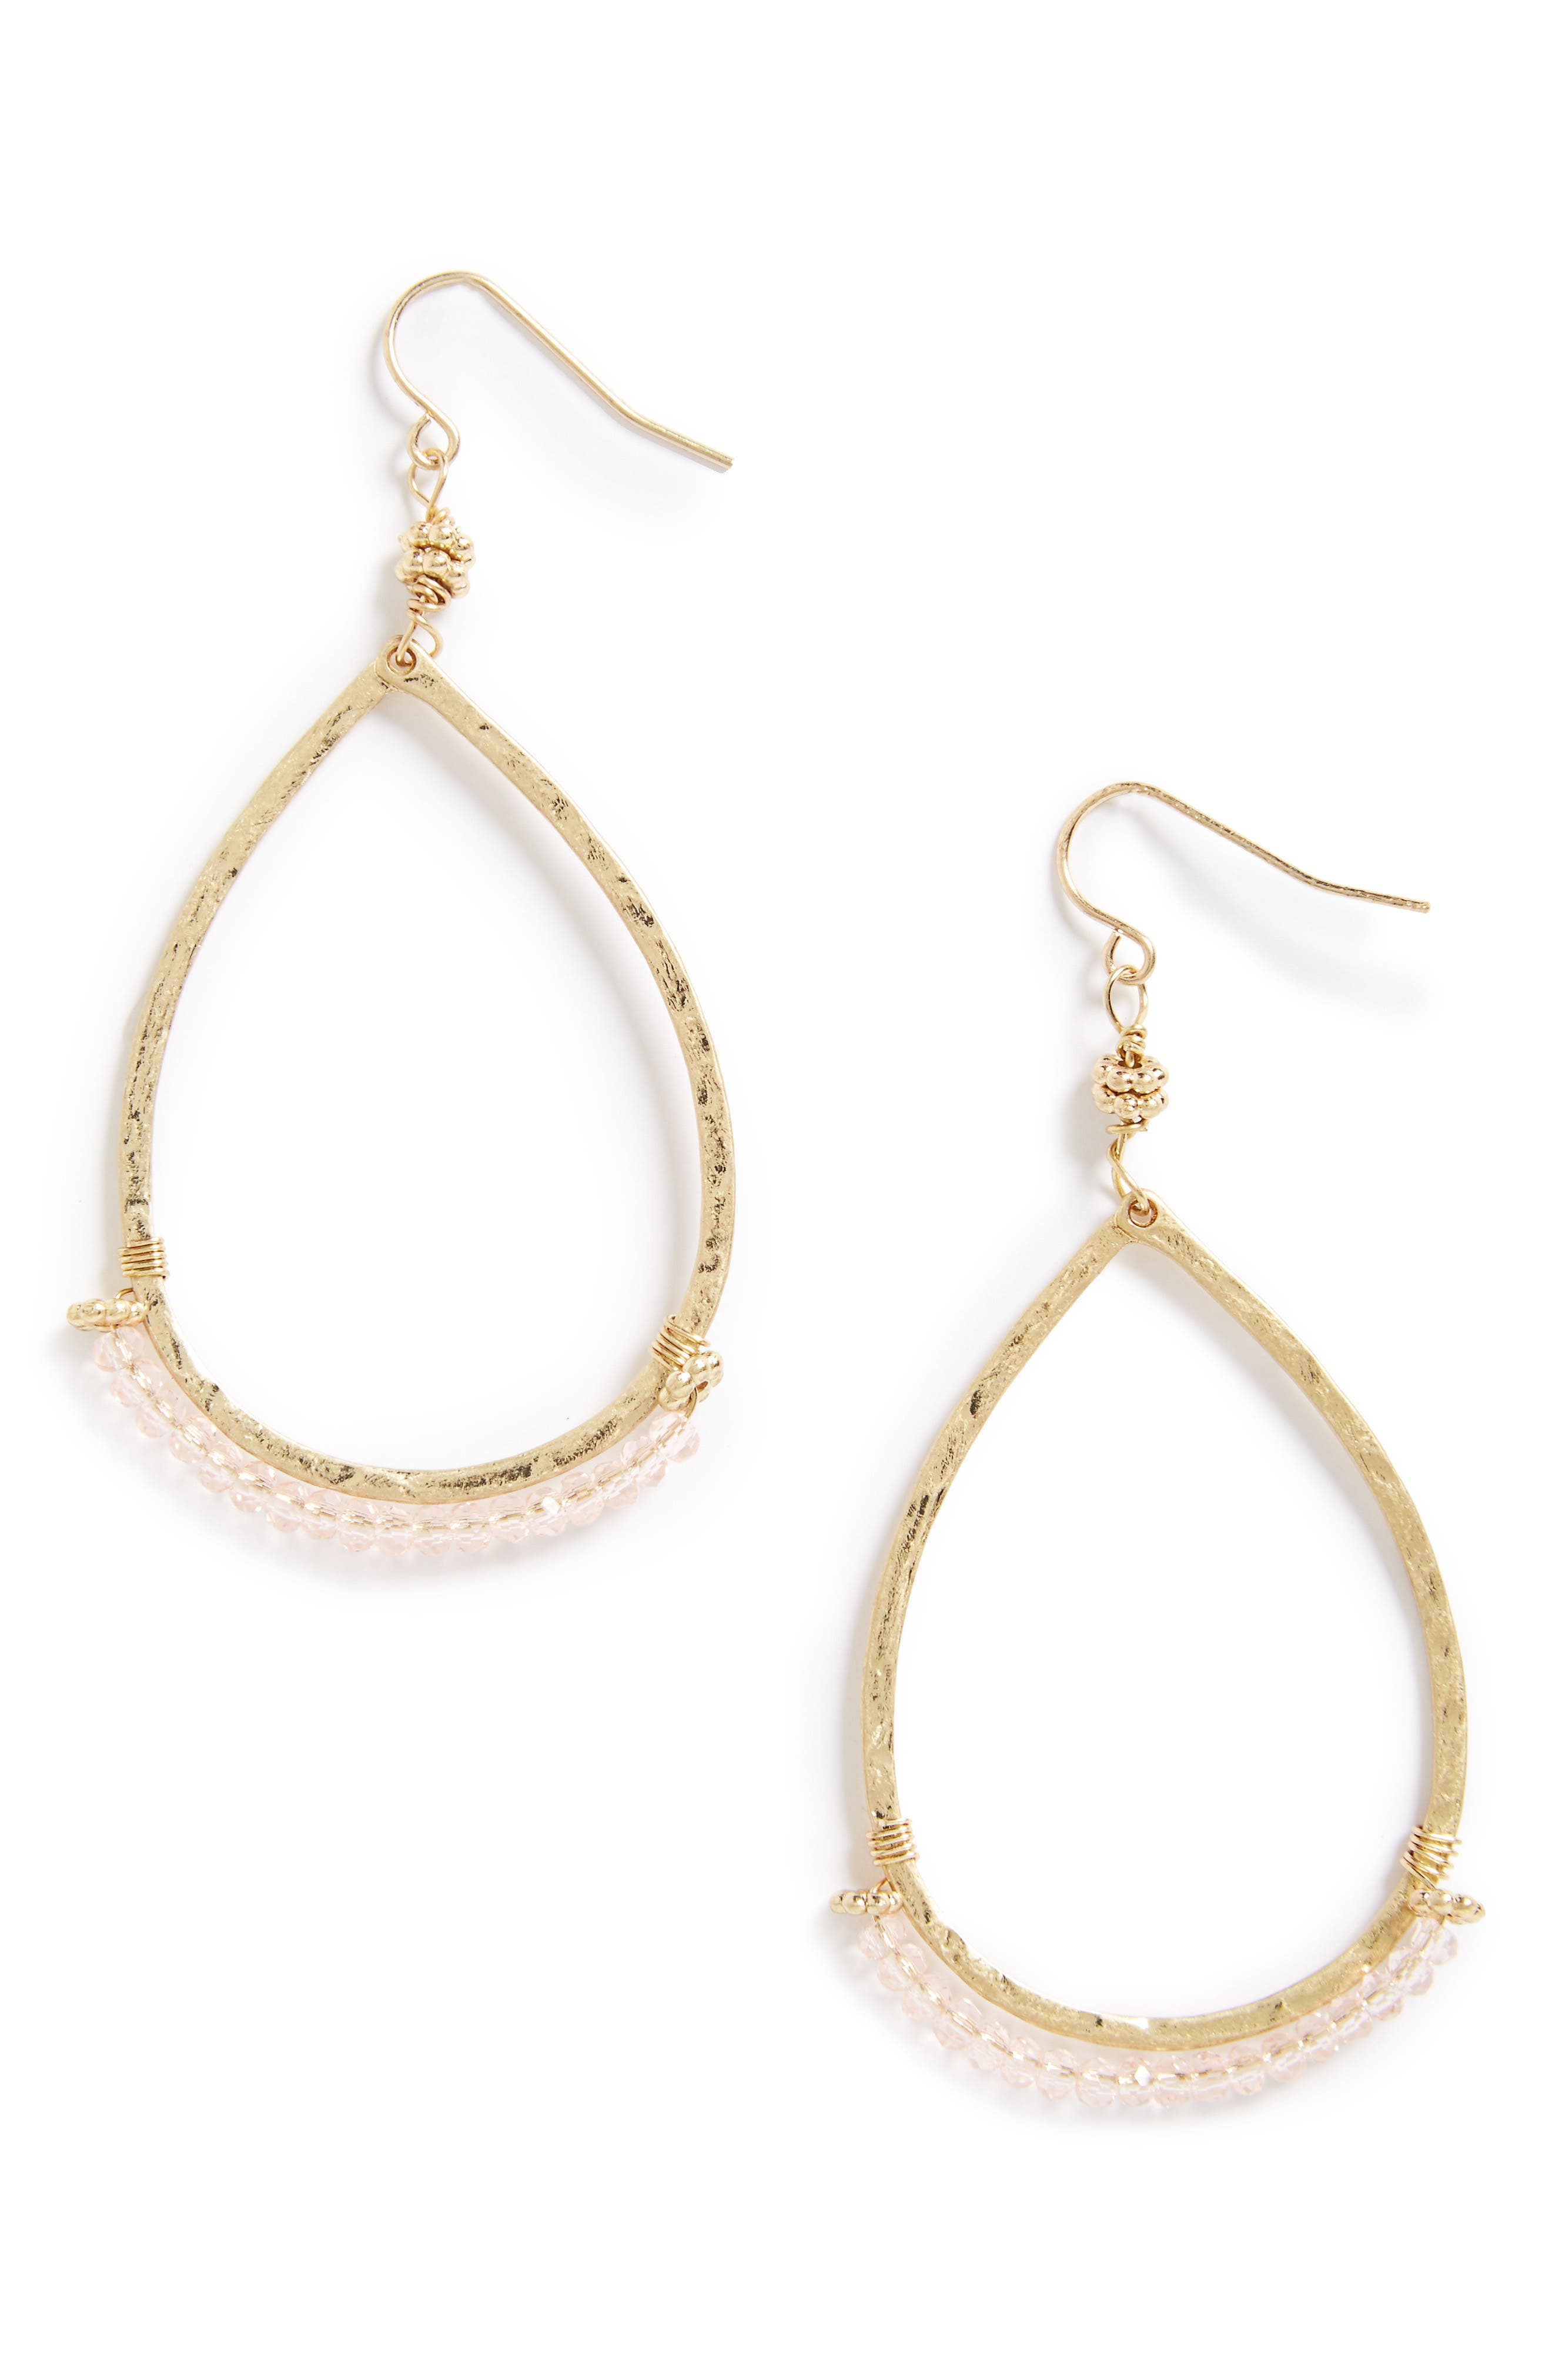 Beaded Teardrop Earrings,                             Main thumbnail 1, color,                             Worn Gold/ Platinum Glass